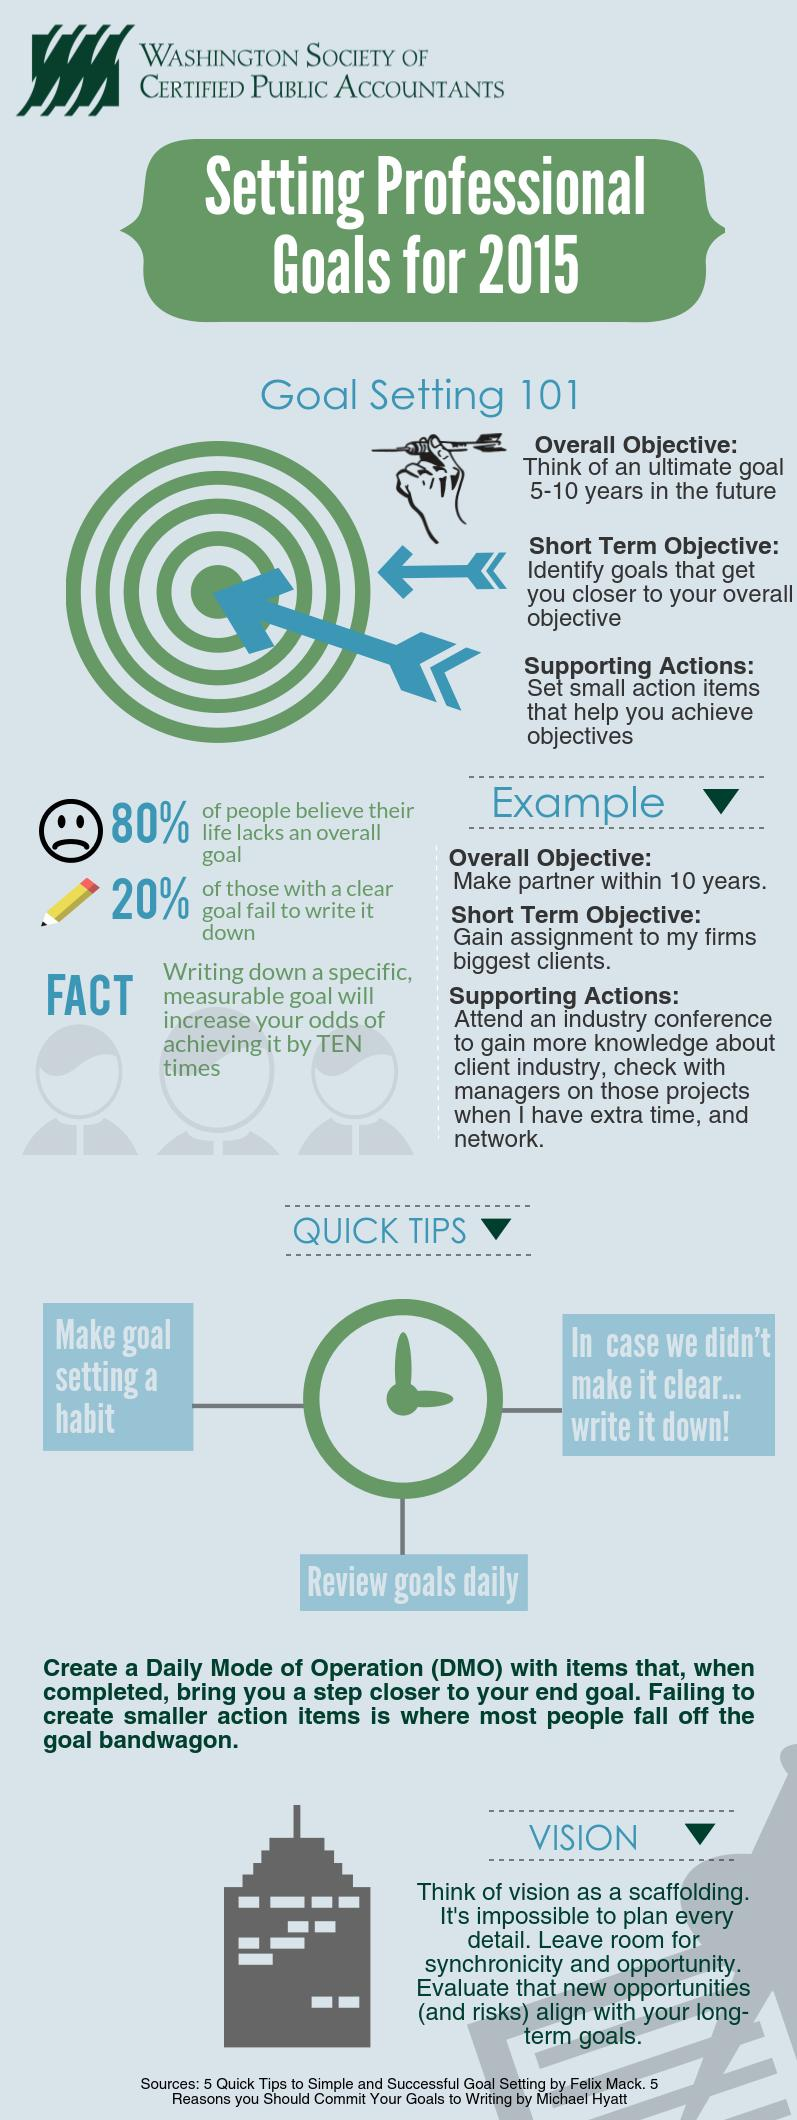 professional goal setting for  setting professional goals for 2015 infographic